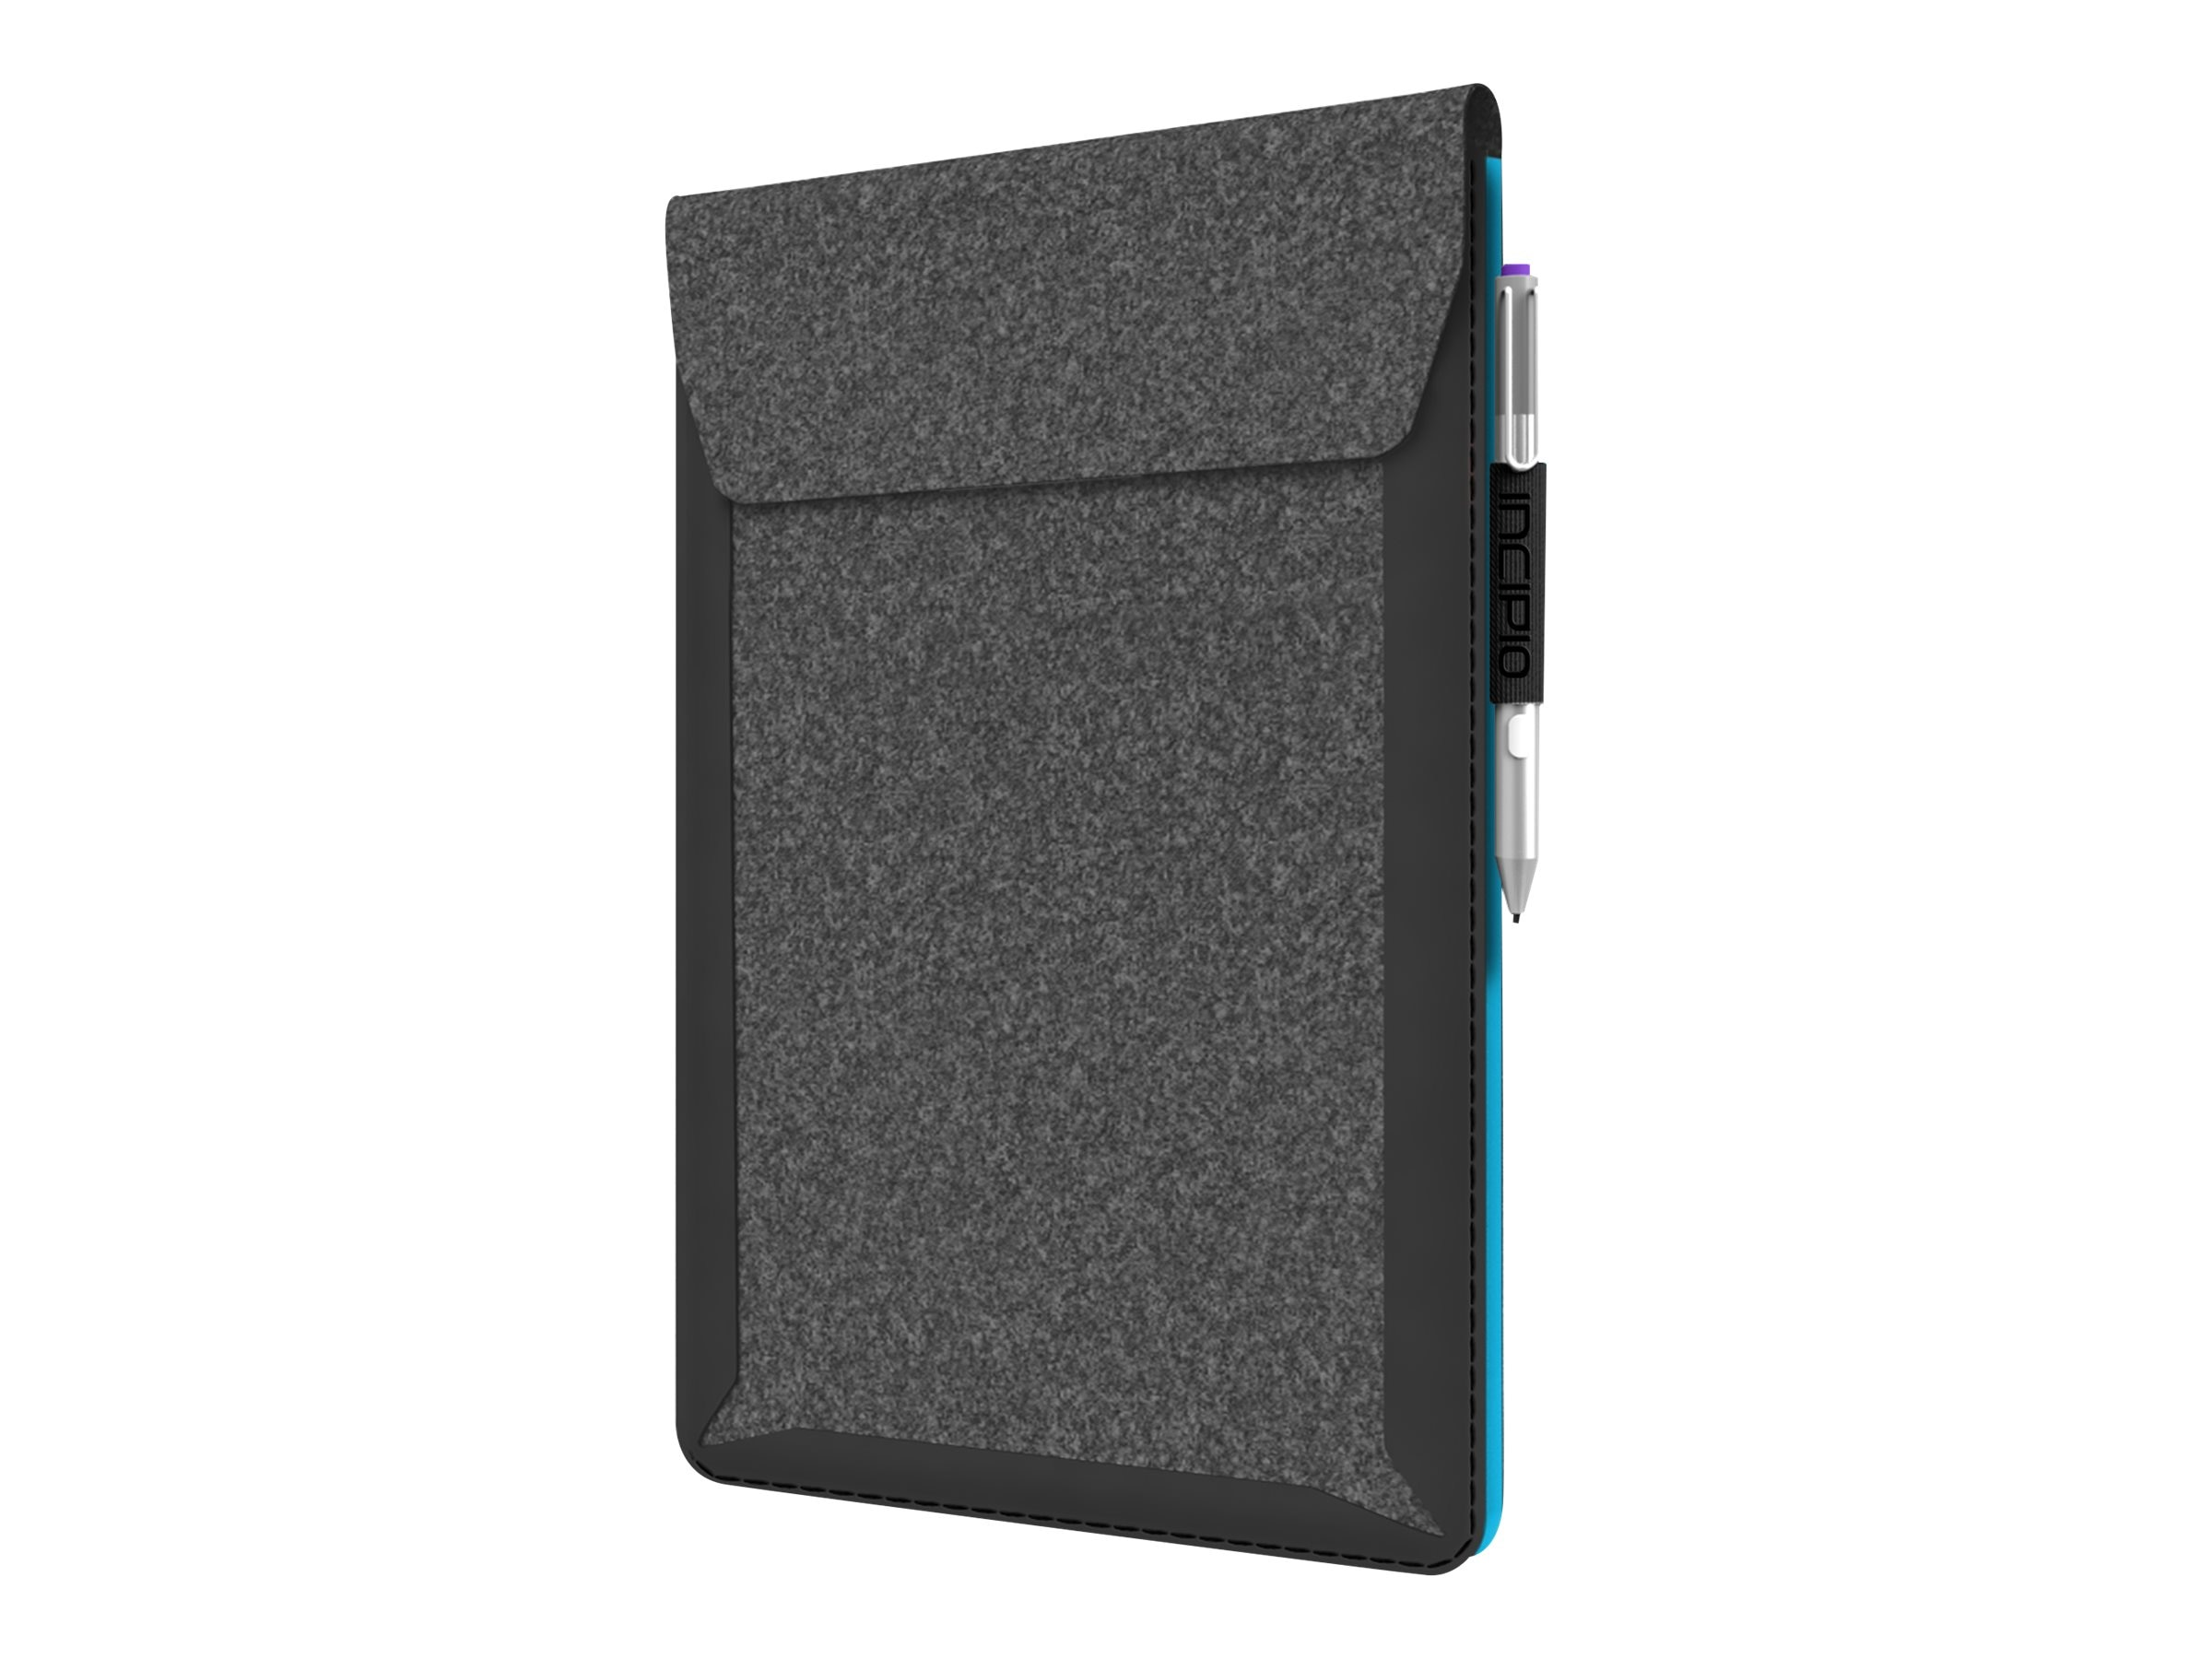 Incipio Underground Sleeve Soft Felt w  Welded Shock Absorbing Frame for 10 11 Devices, Gray Cyan